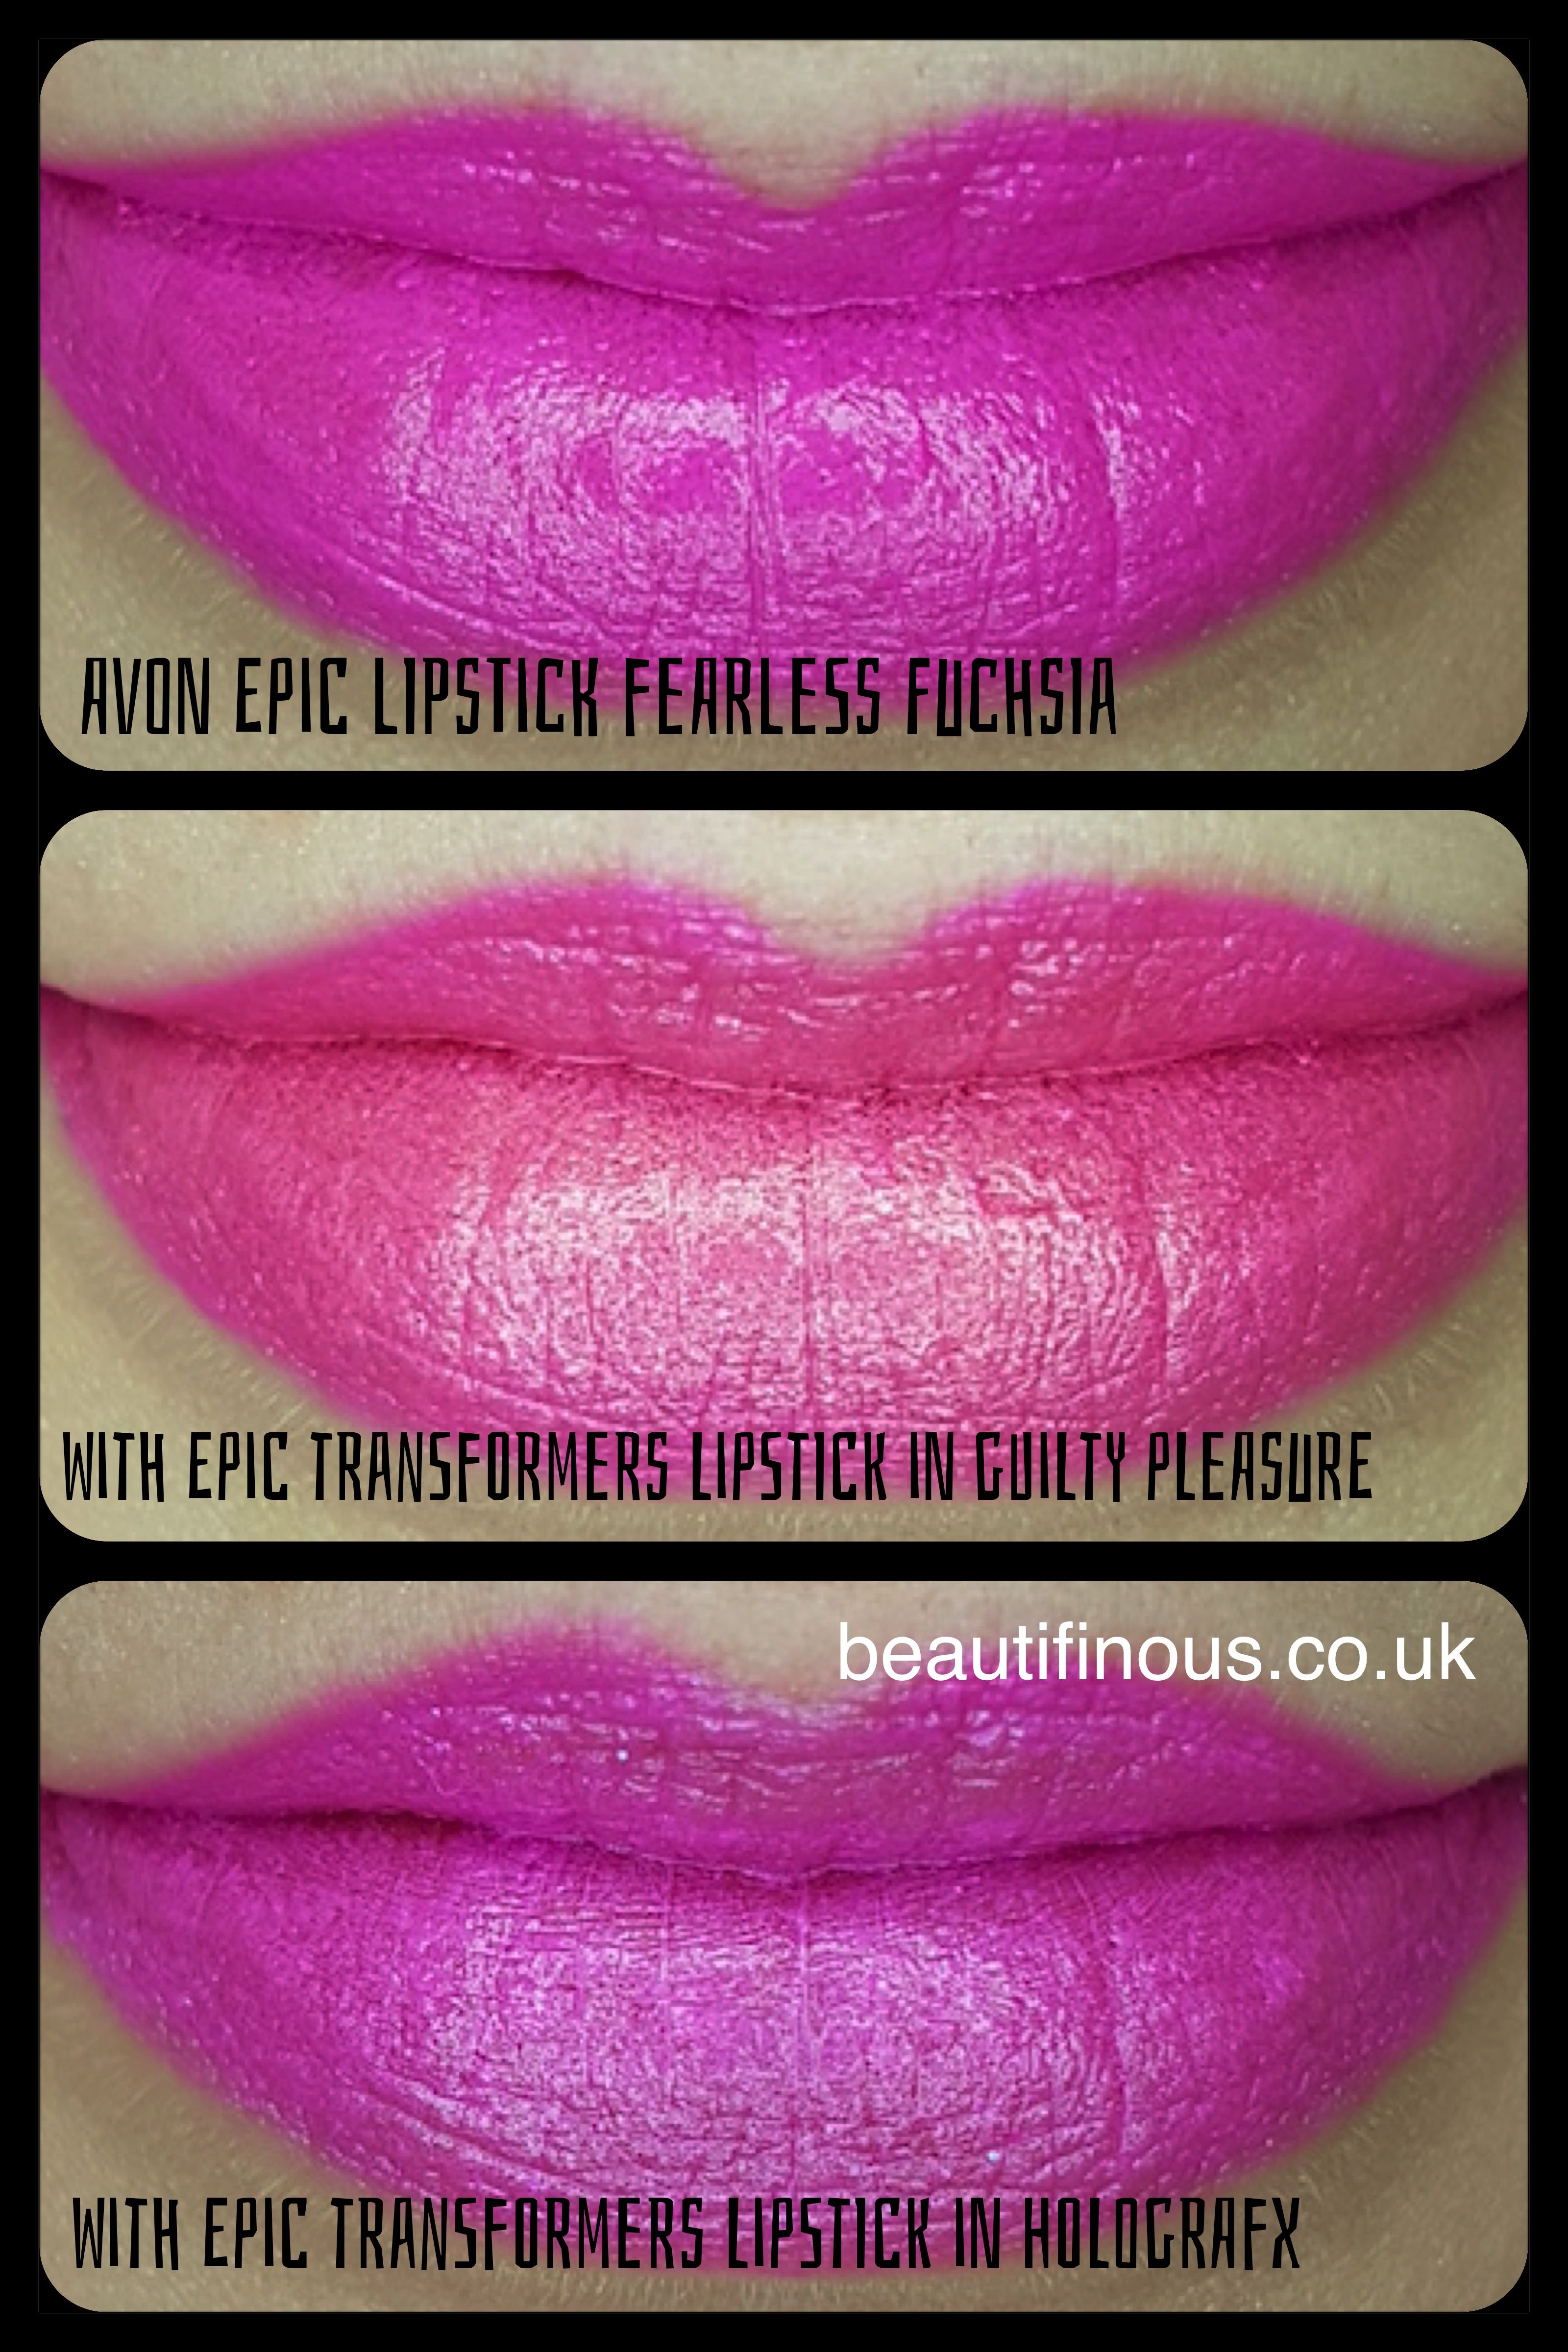 Avon Mark Epic Lipstick In The Shade Fearless Fuchsia With Two Of